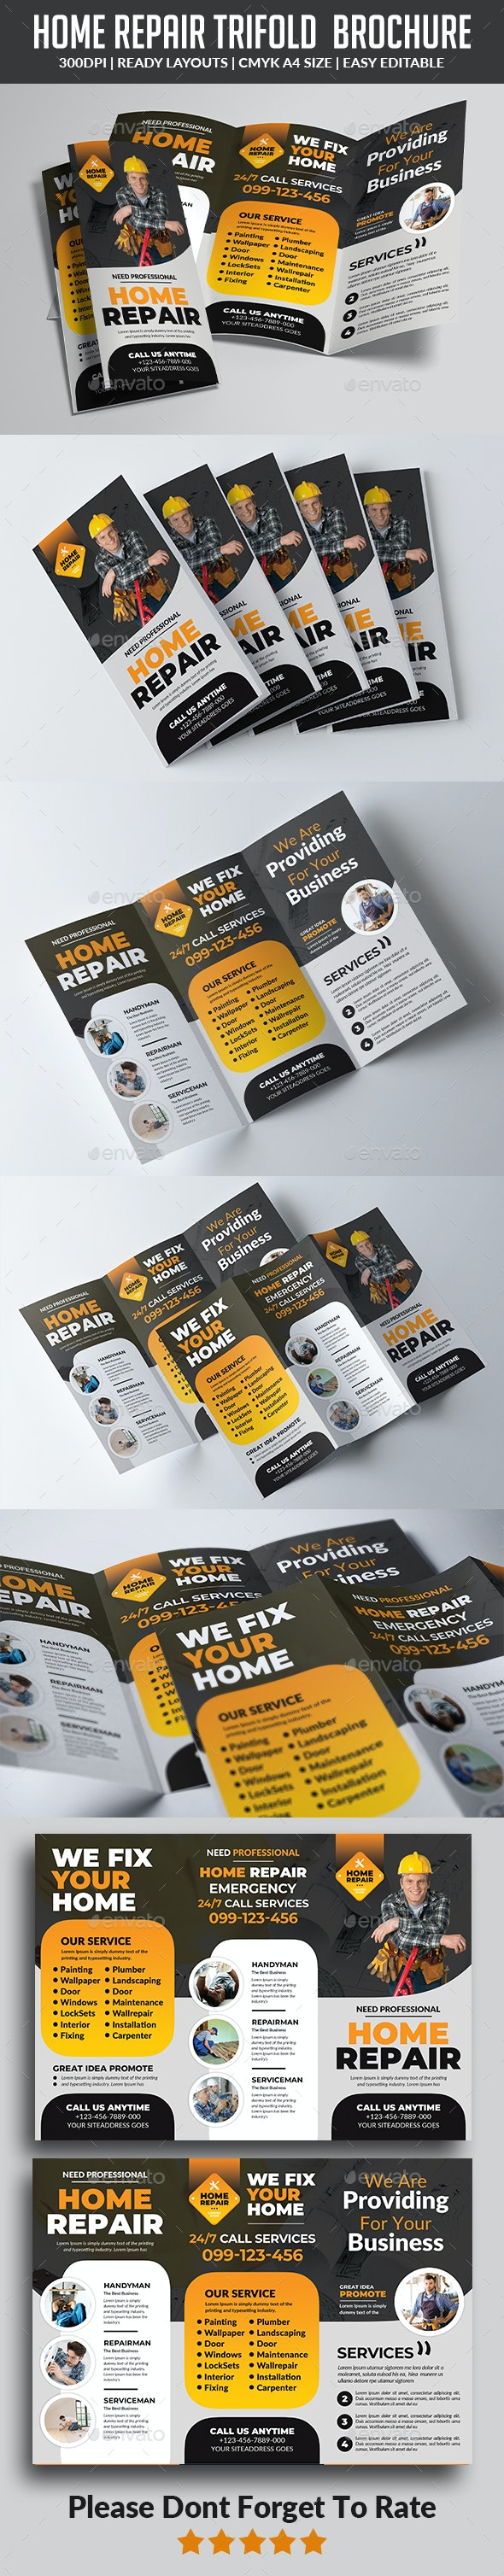 Home Repair Trifold  Brochure - Corporate Brochures